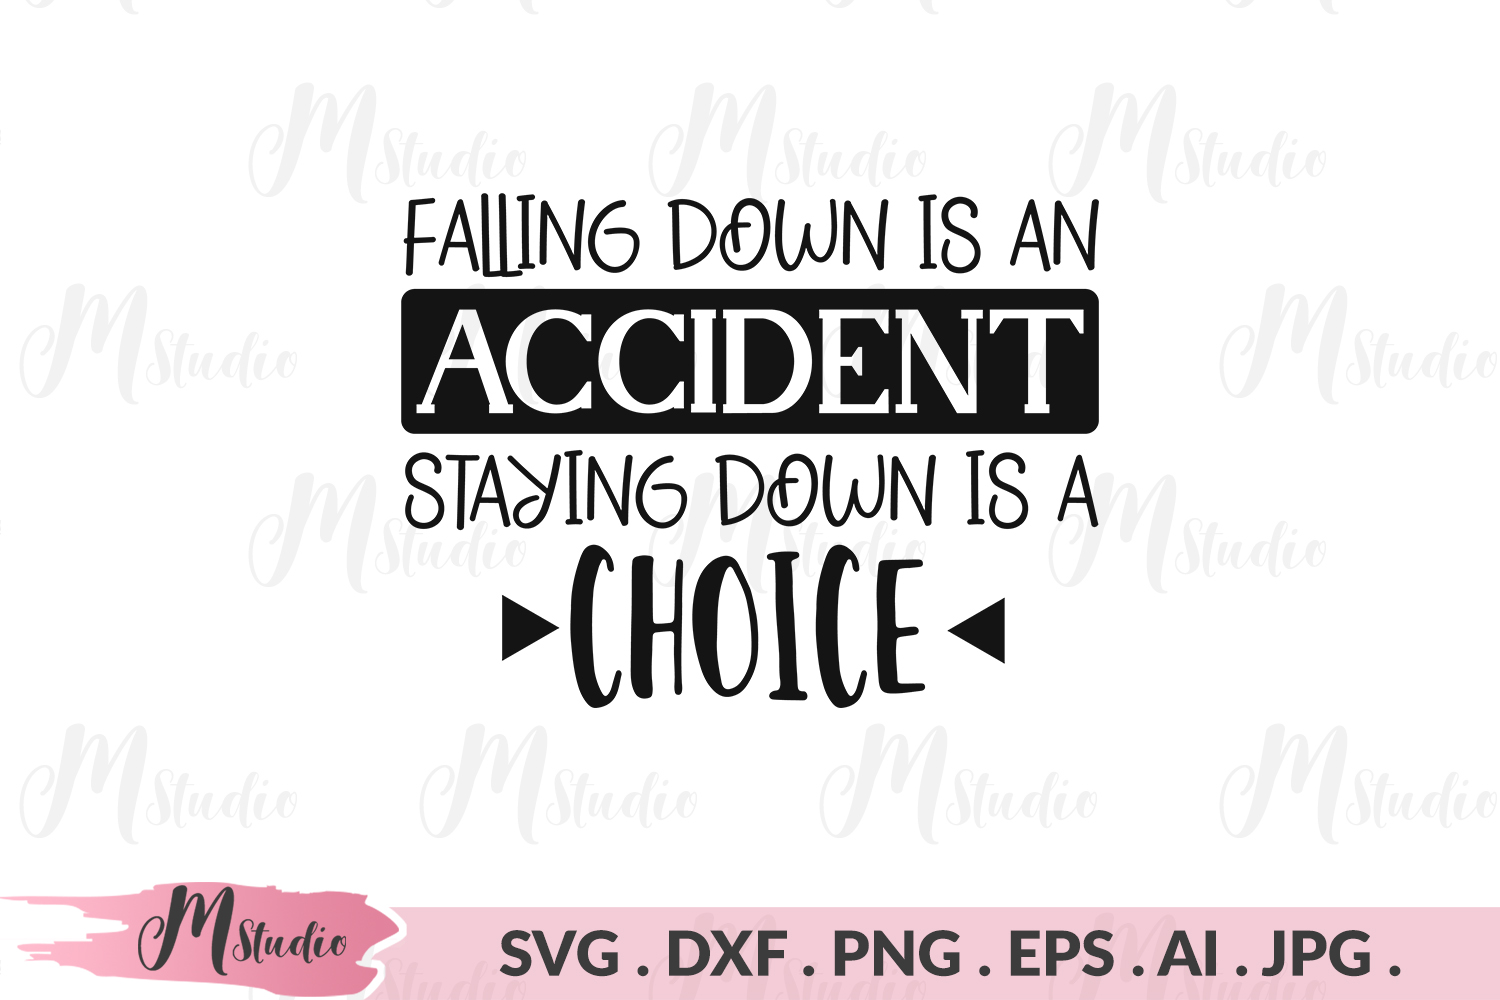 Falling down is an accident staying down is a choice svg. example image 1